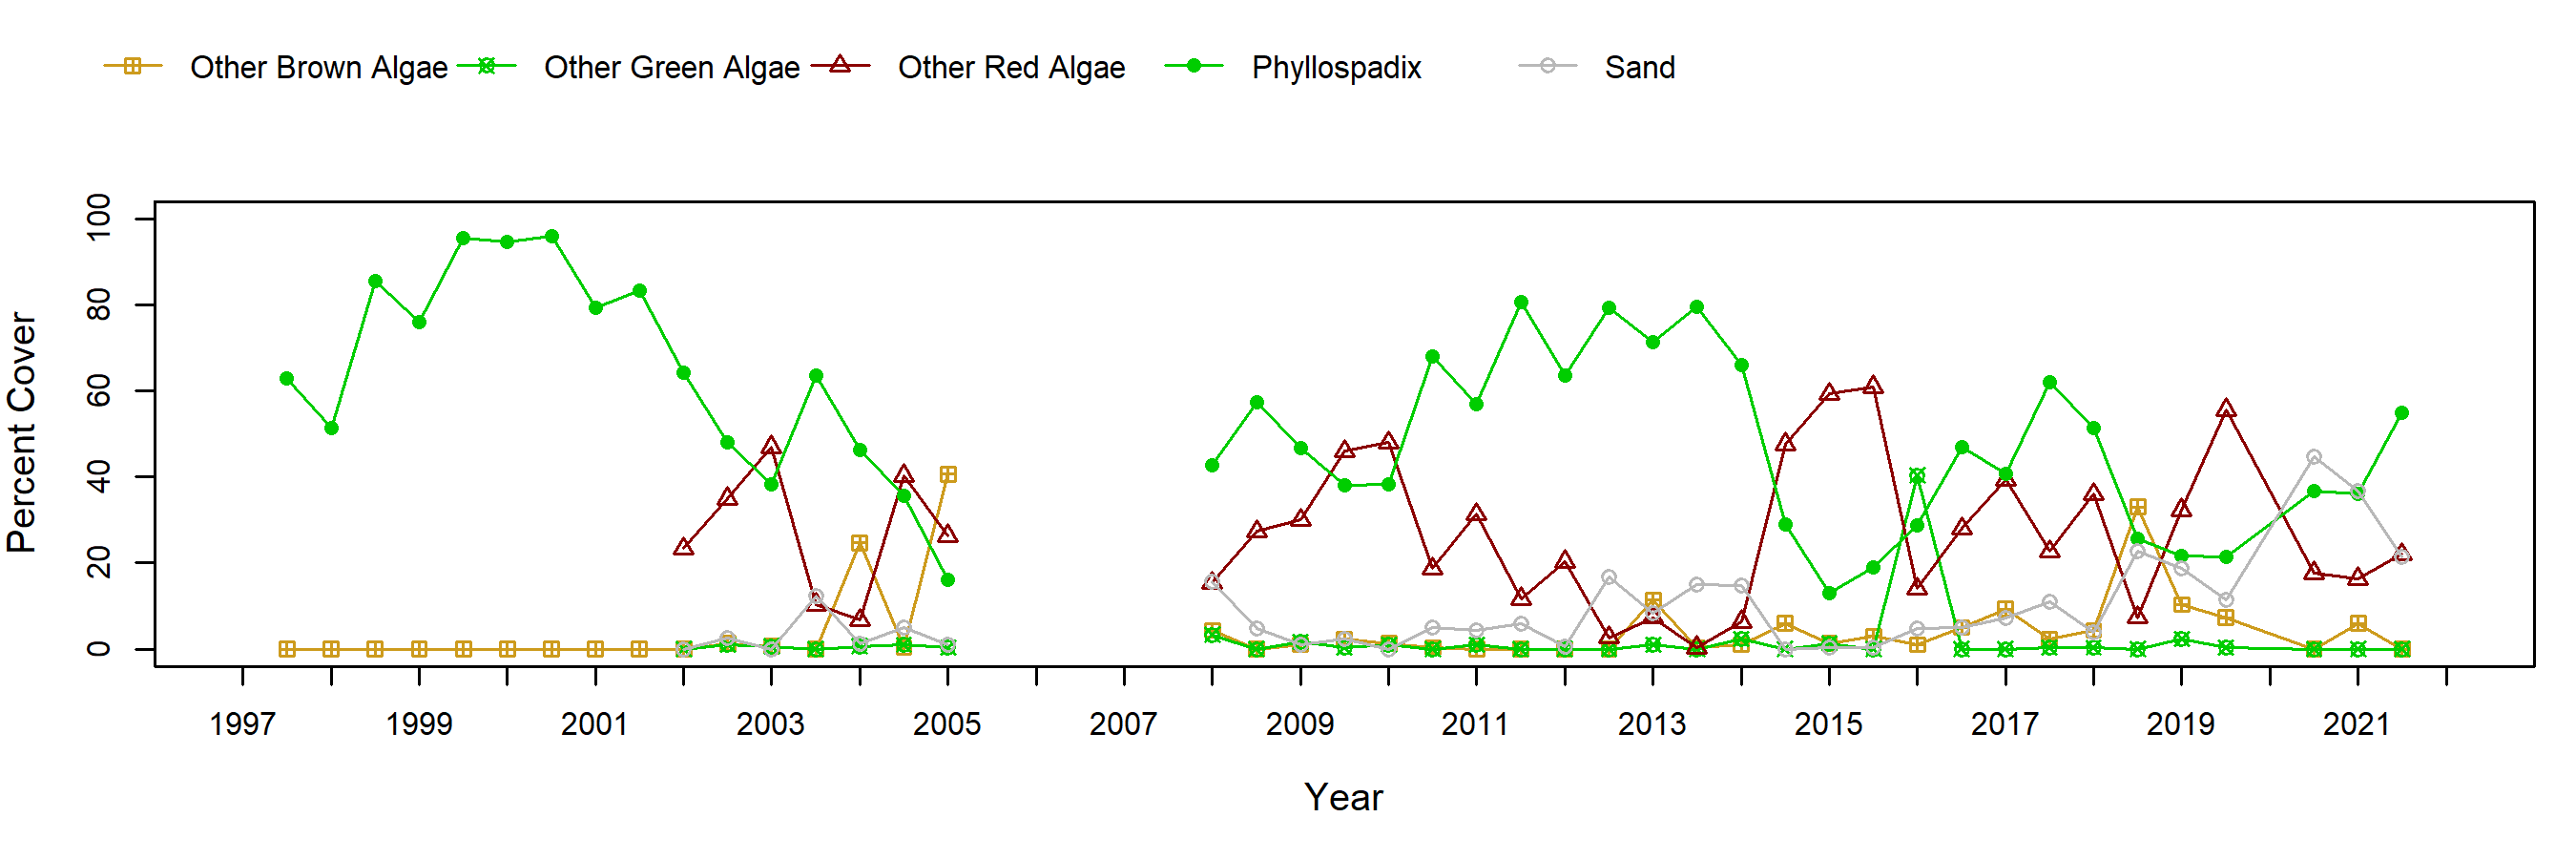 Cardiff Reef surfgrass trend plot